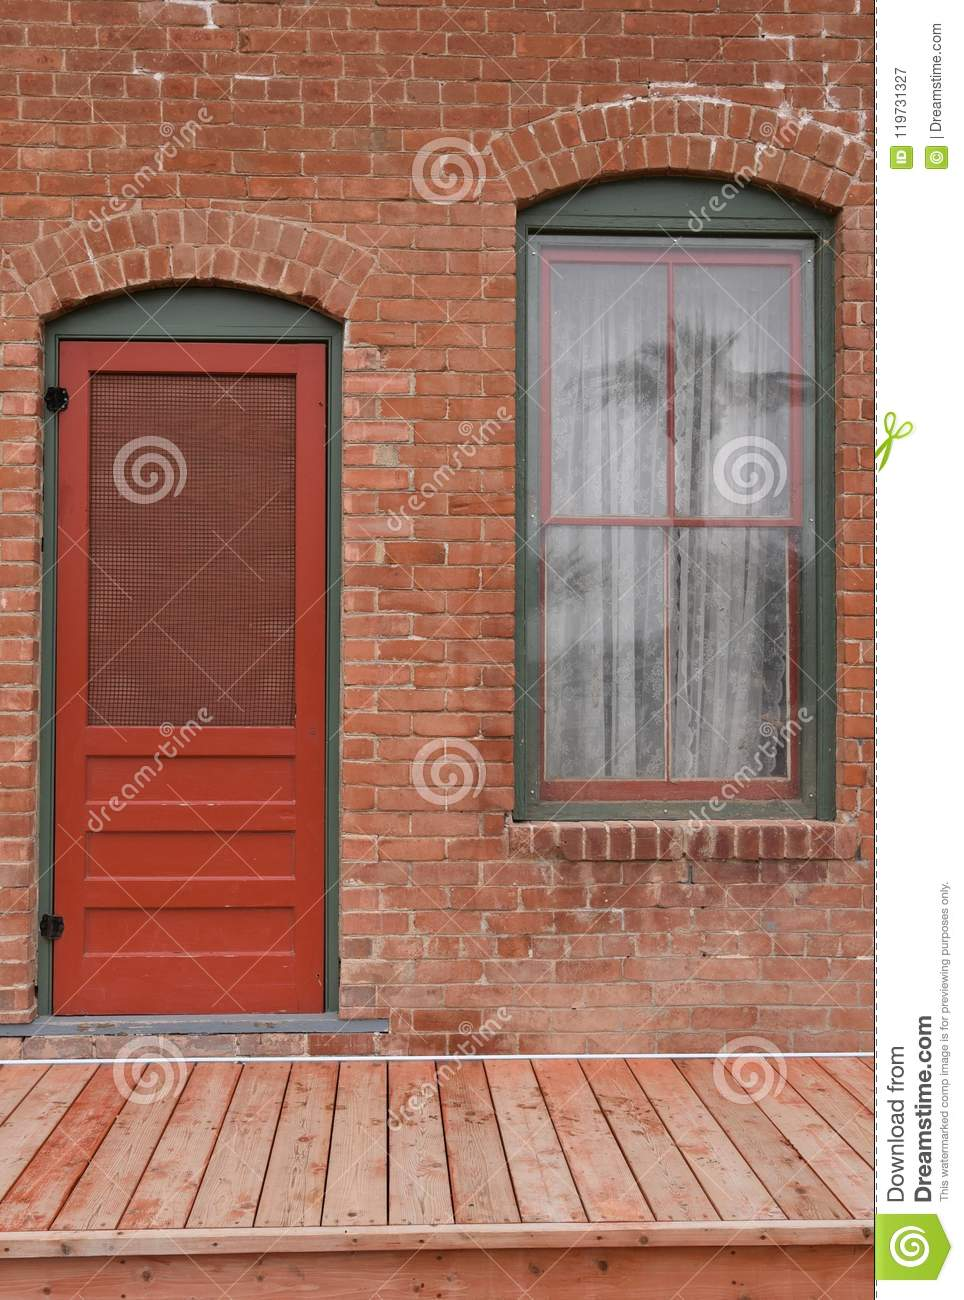 Window and red door on brick building with palm tree reflected in window